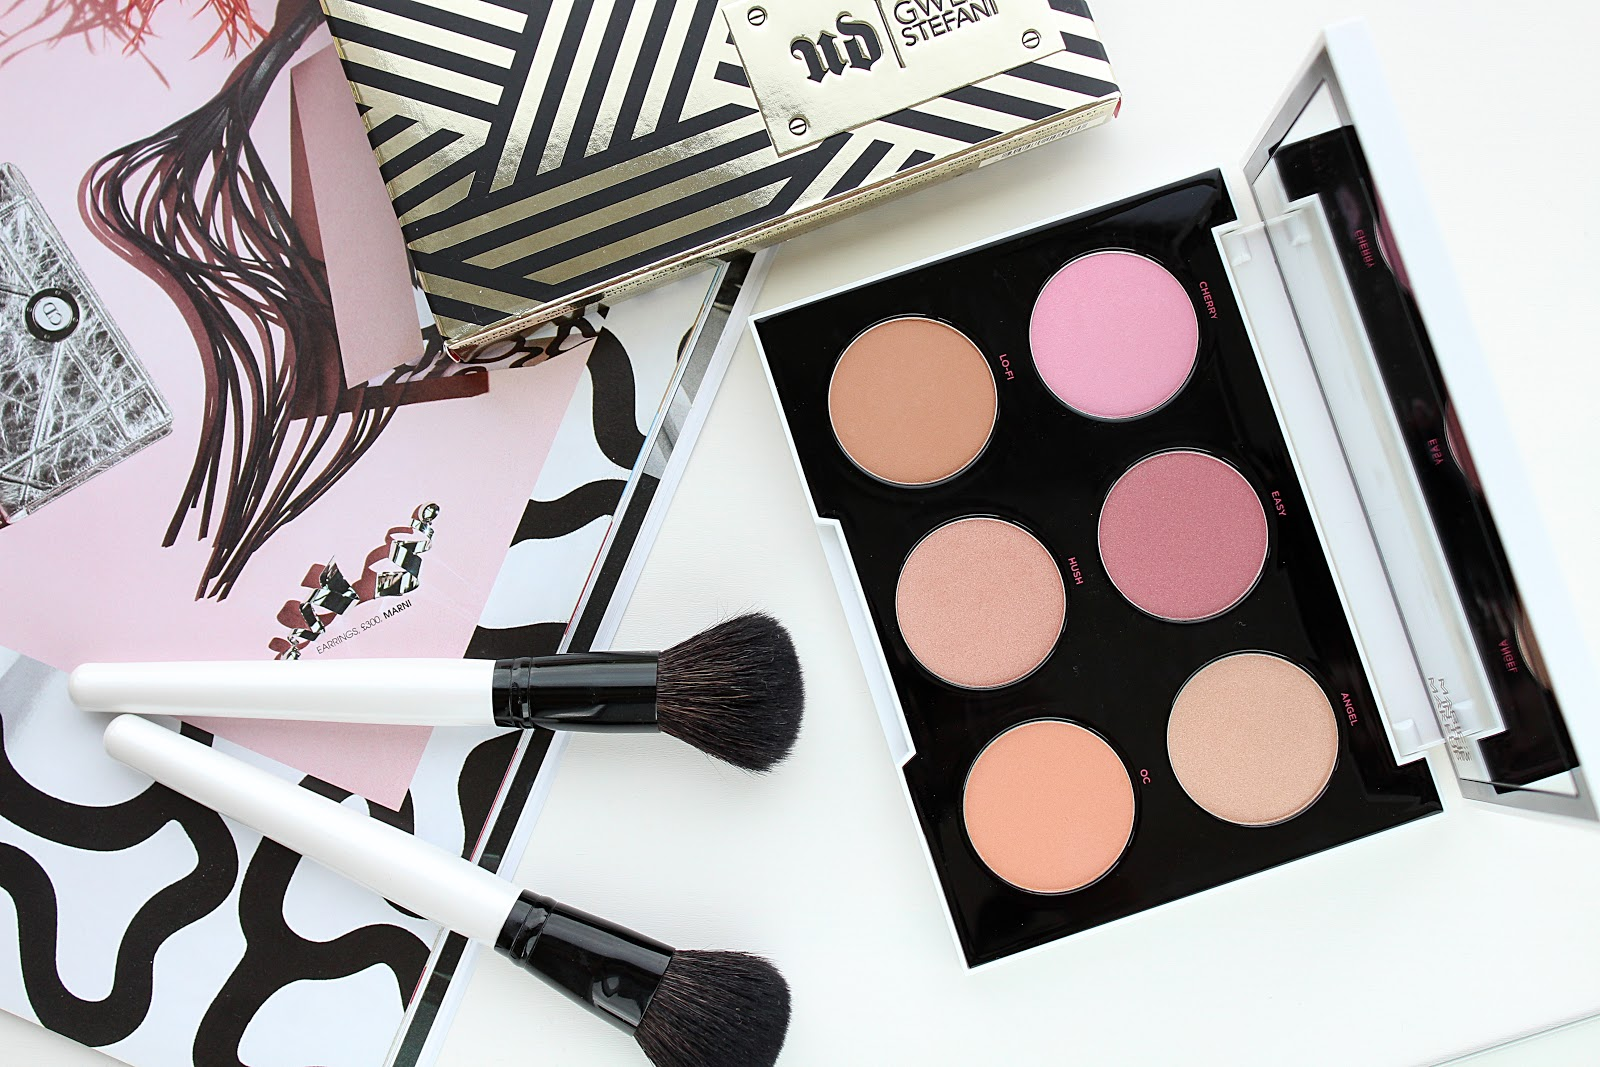 Urban Decay Gwen Stefani Blush Palette Review & Swatches